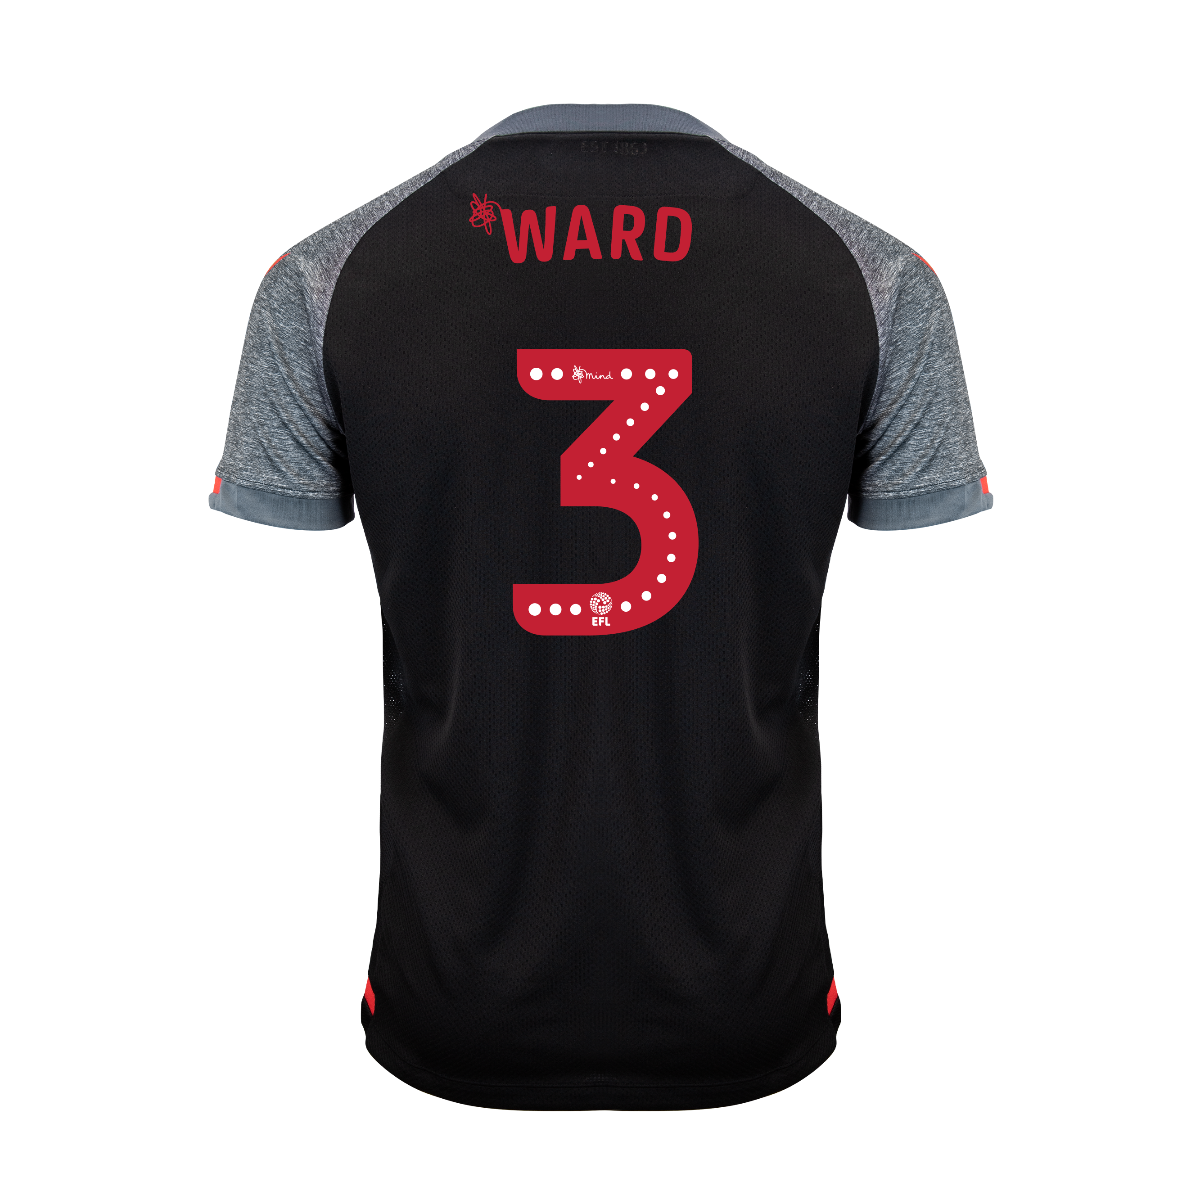 2019/20 Ladies Away Shirt - Ward